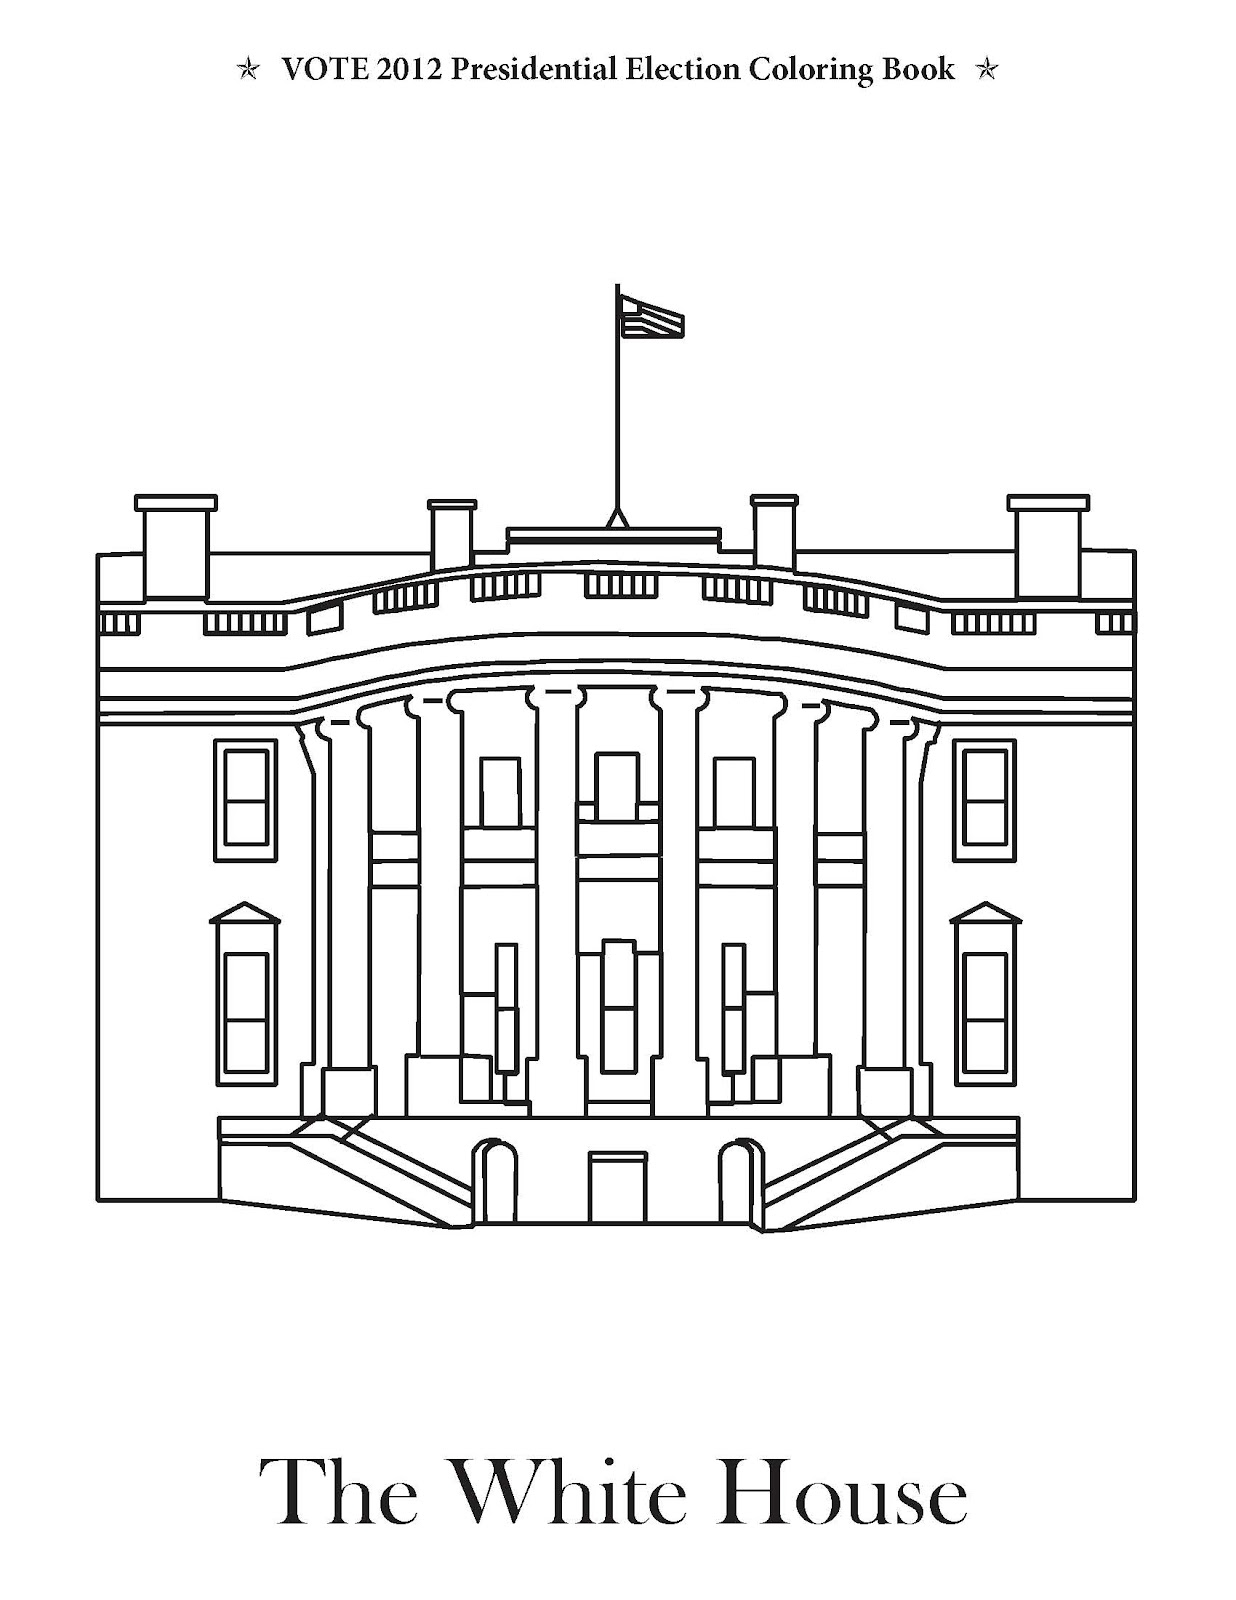 washington dc coloring pages printable - vote 2012 presidential election coloring book